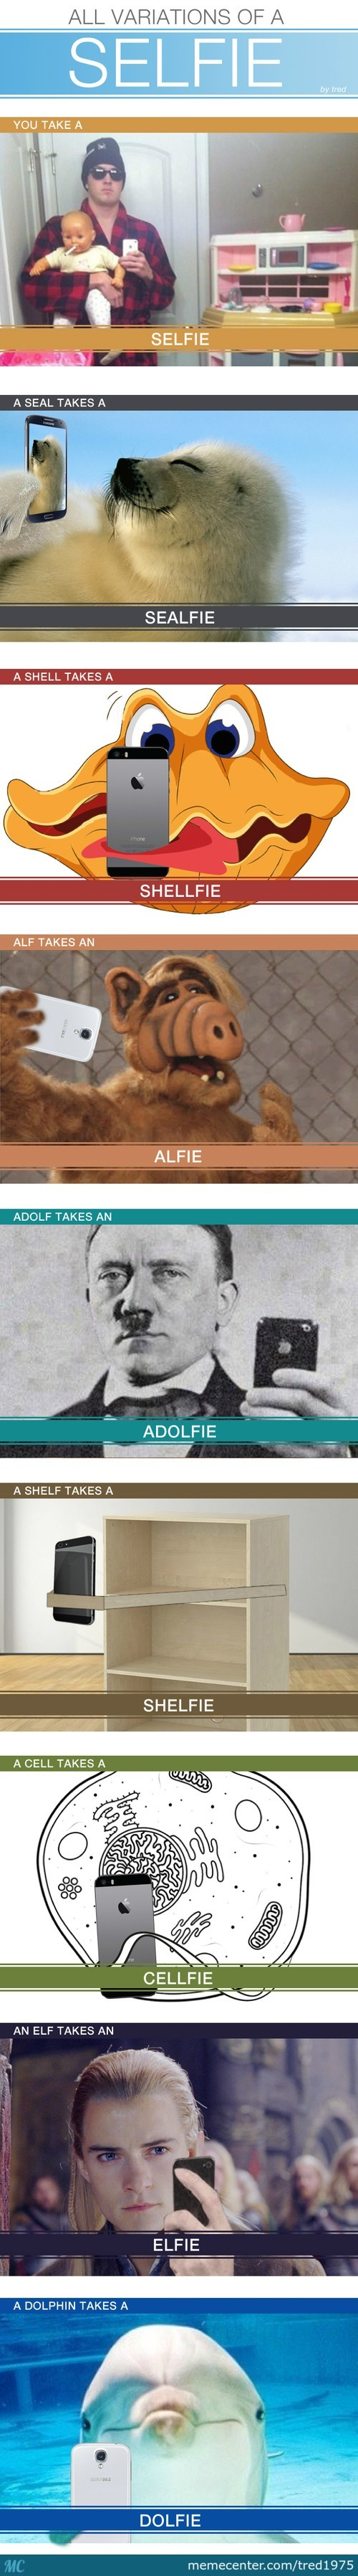 A Selfie Variation Guide